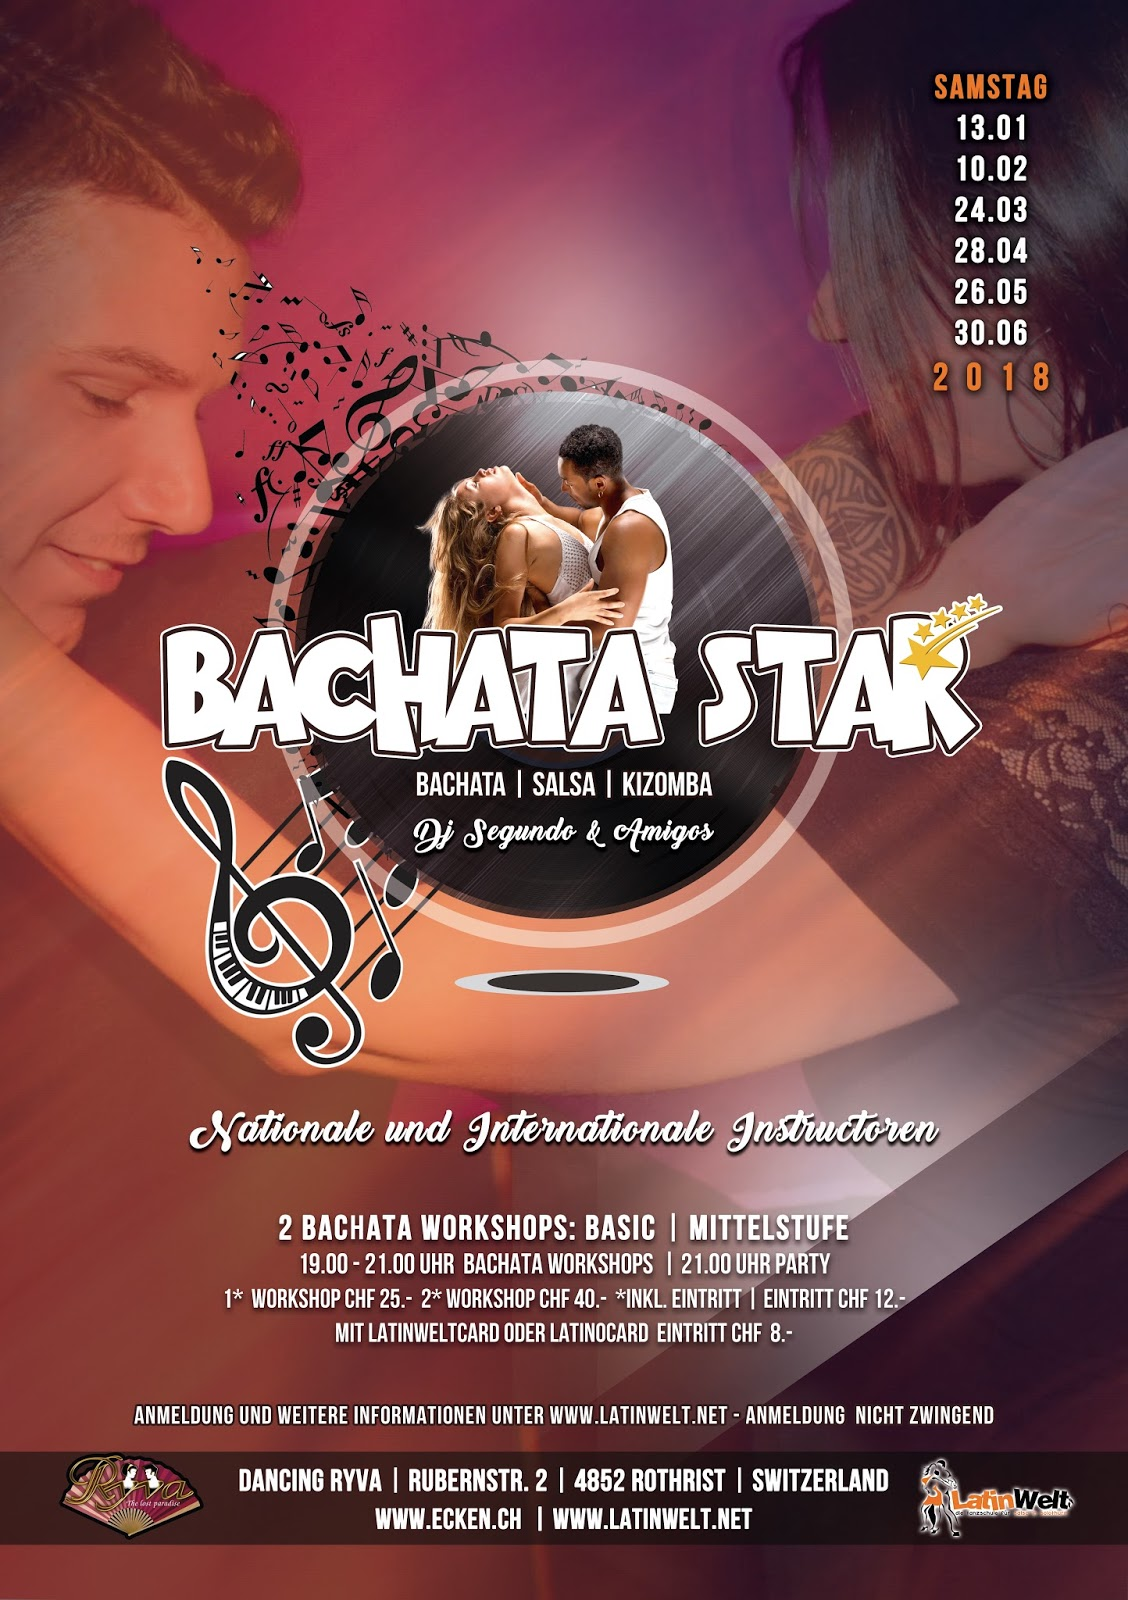 Bachata Star